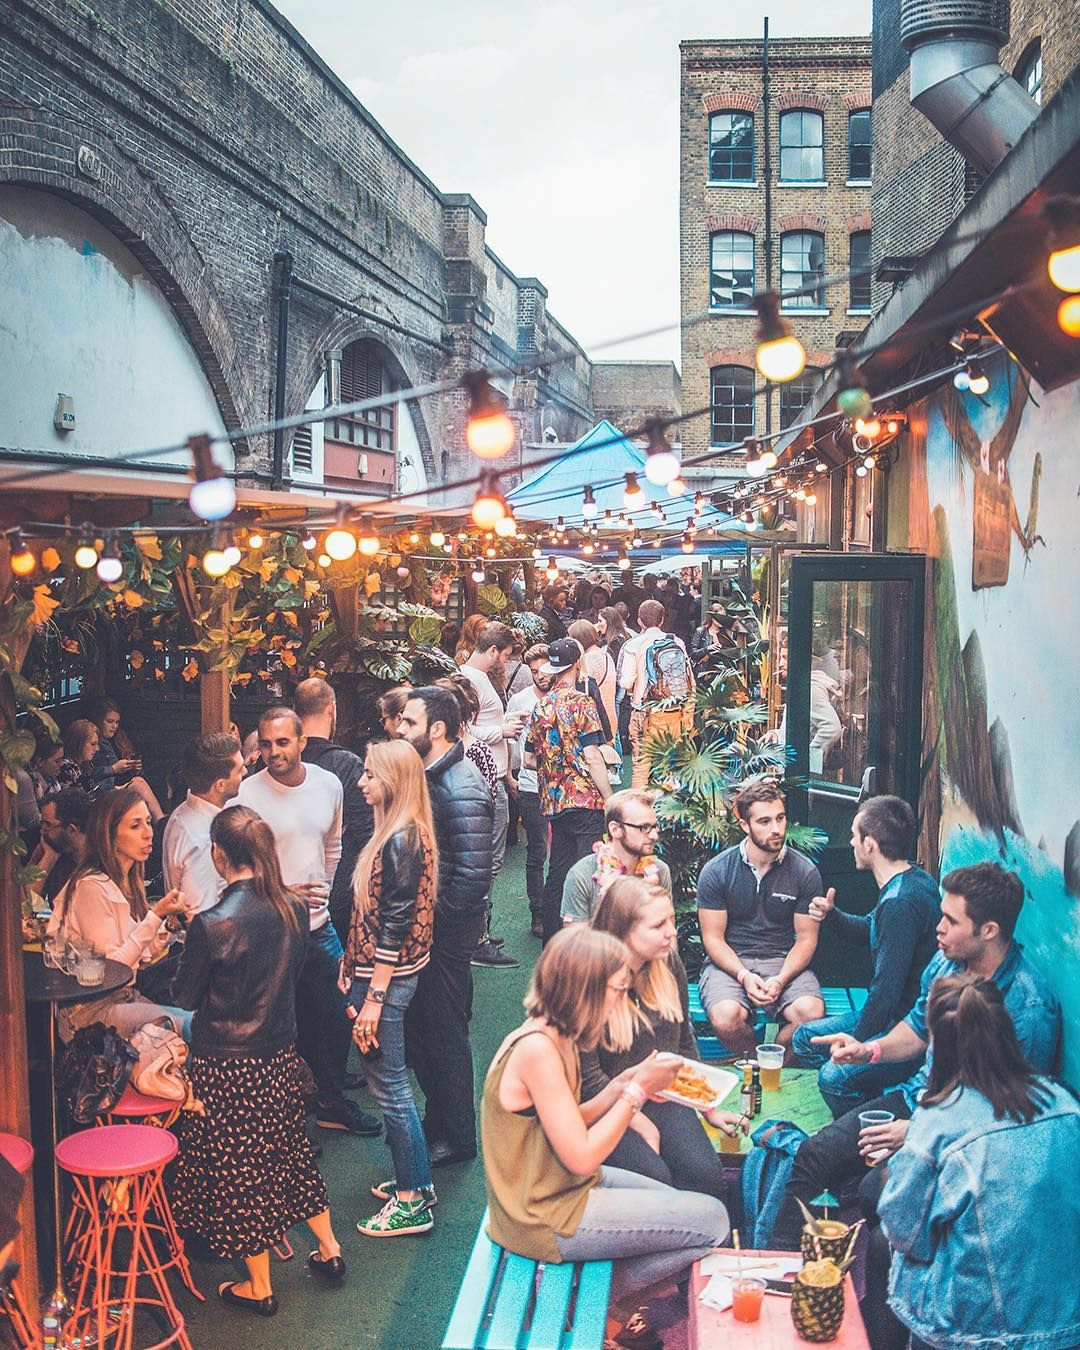 Shoreditch London Uk: 9 Cool Things To Do In Shoreditch, London